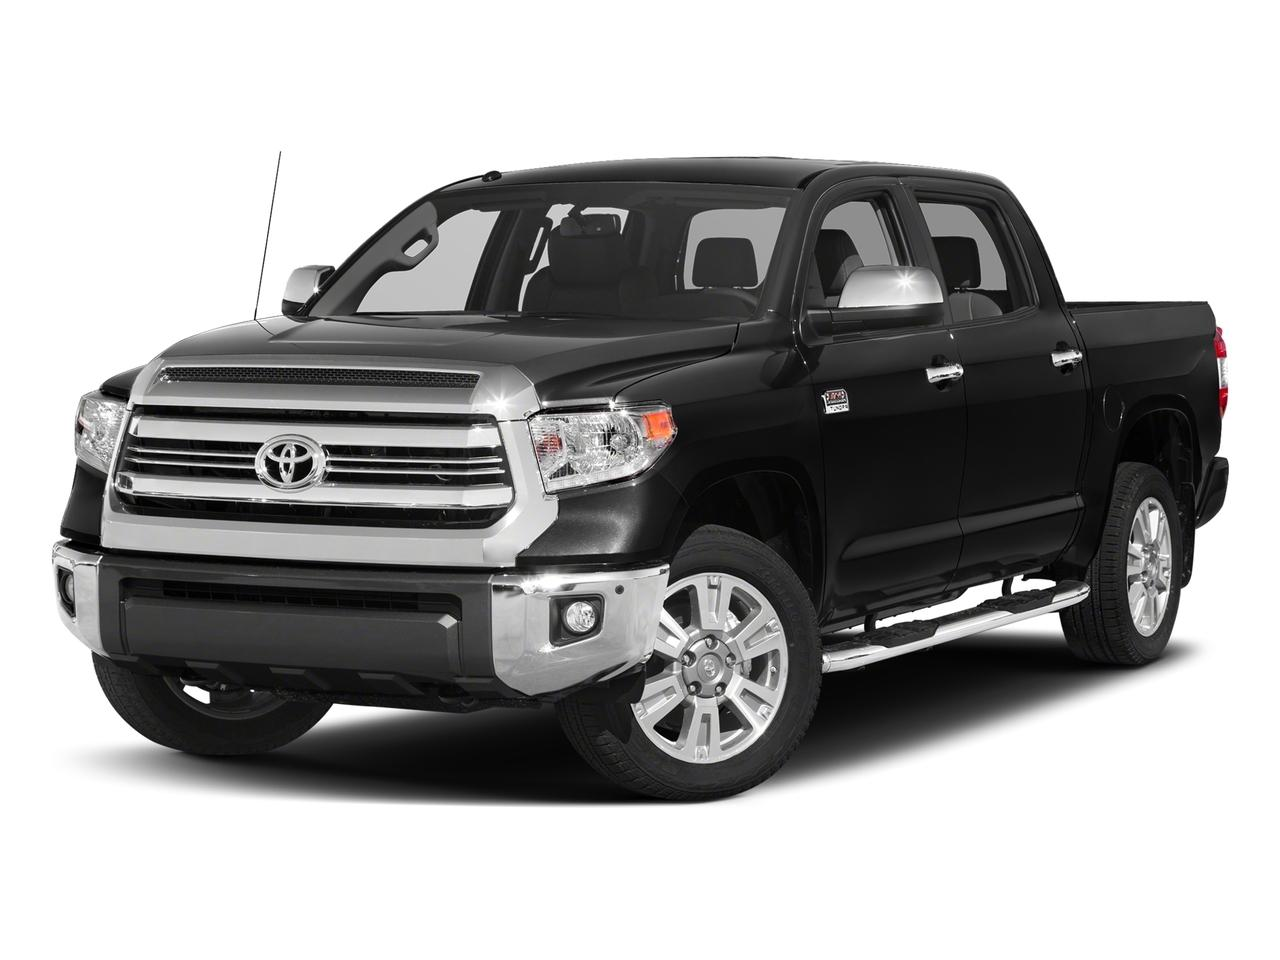 2017 Toyota Tundra 4WD Vehicle Photo in San Angelo, TX 76901